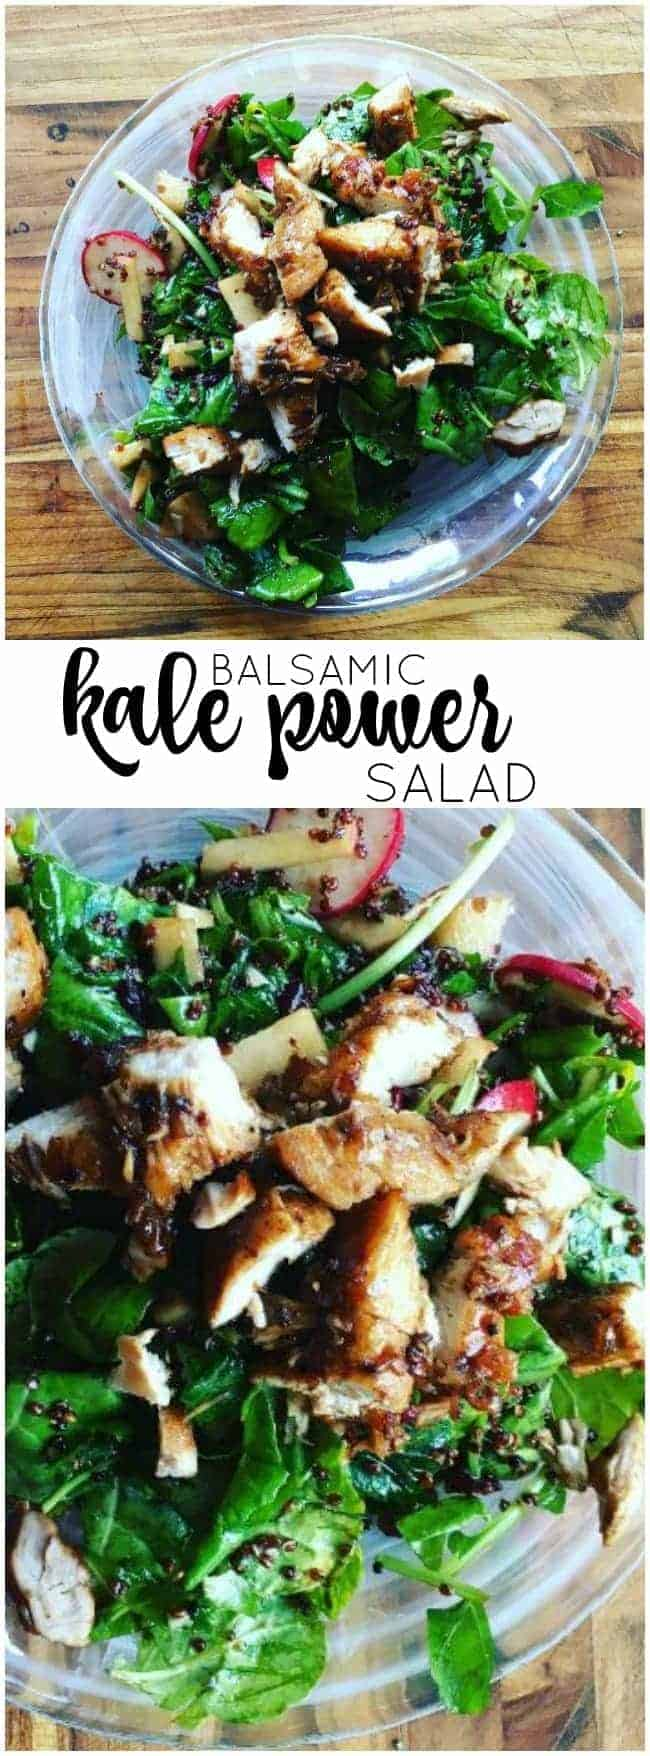 Less that 15 minutes and you have a deliciously filling Balsamic Kale Power Salad. High in protein and so so good!